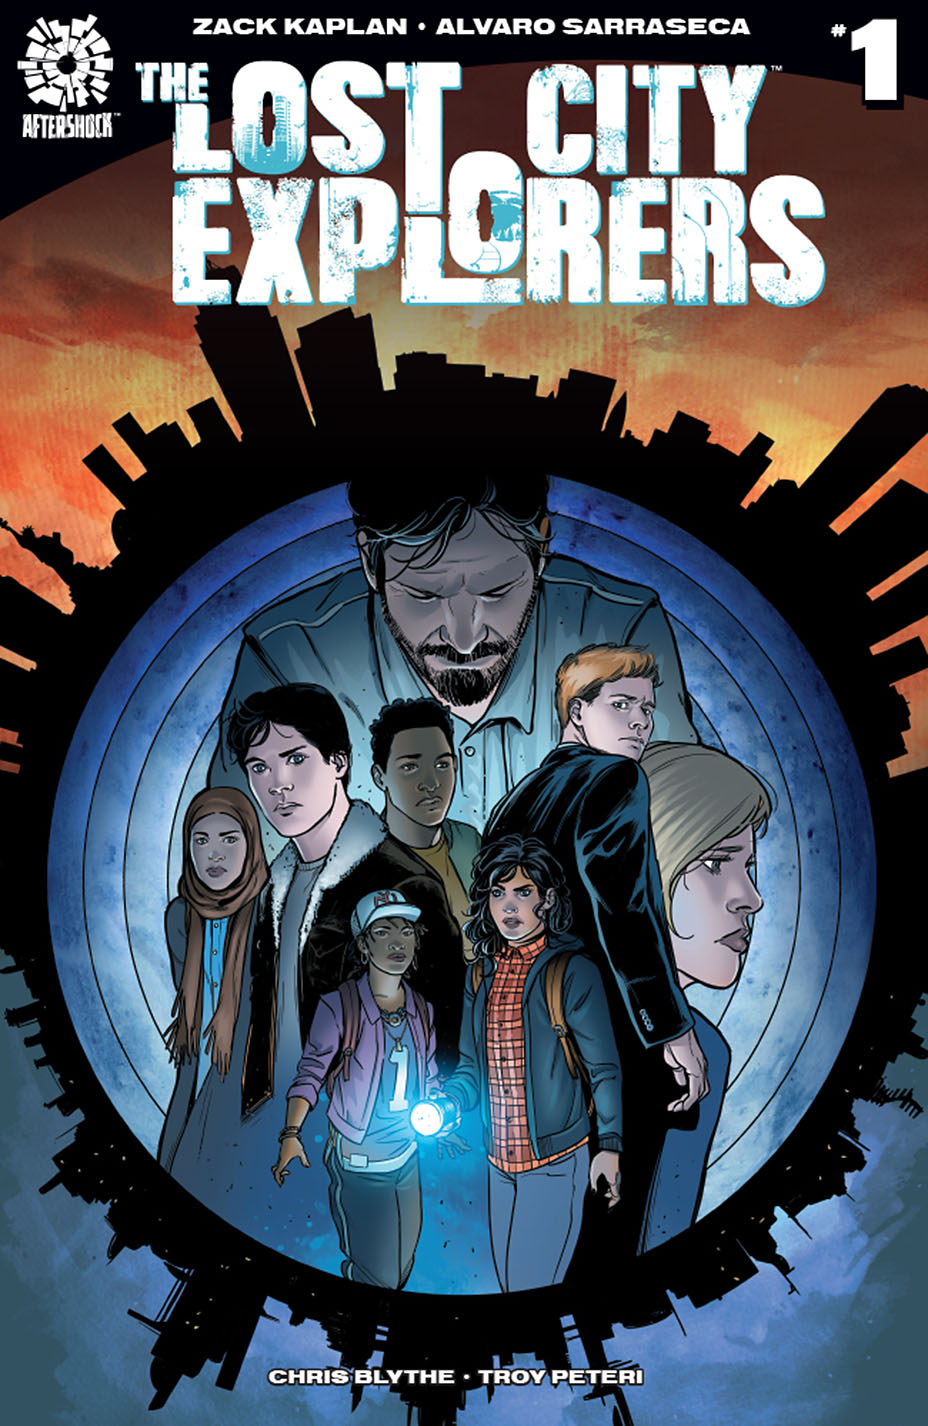 the_lost_city_explorers_1_embed.jpg